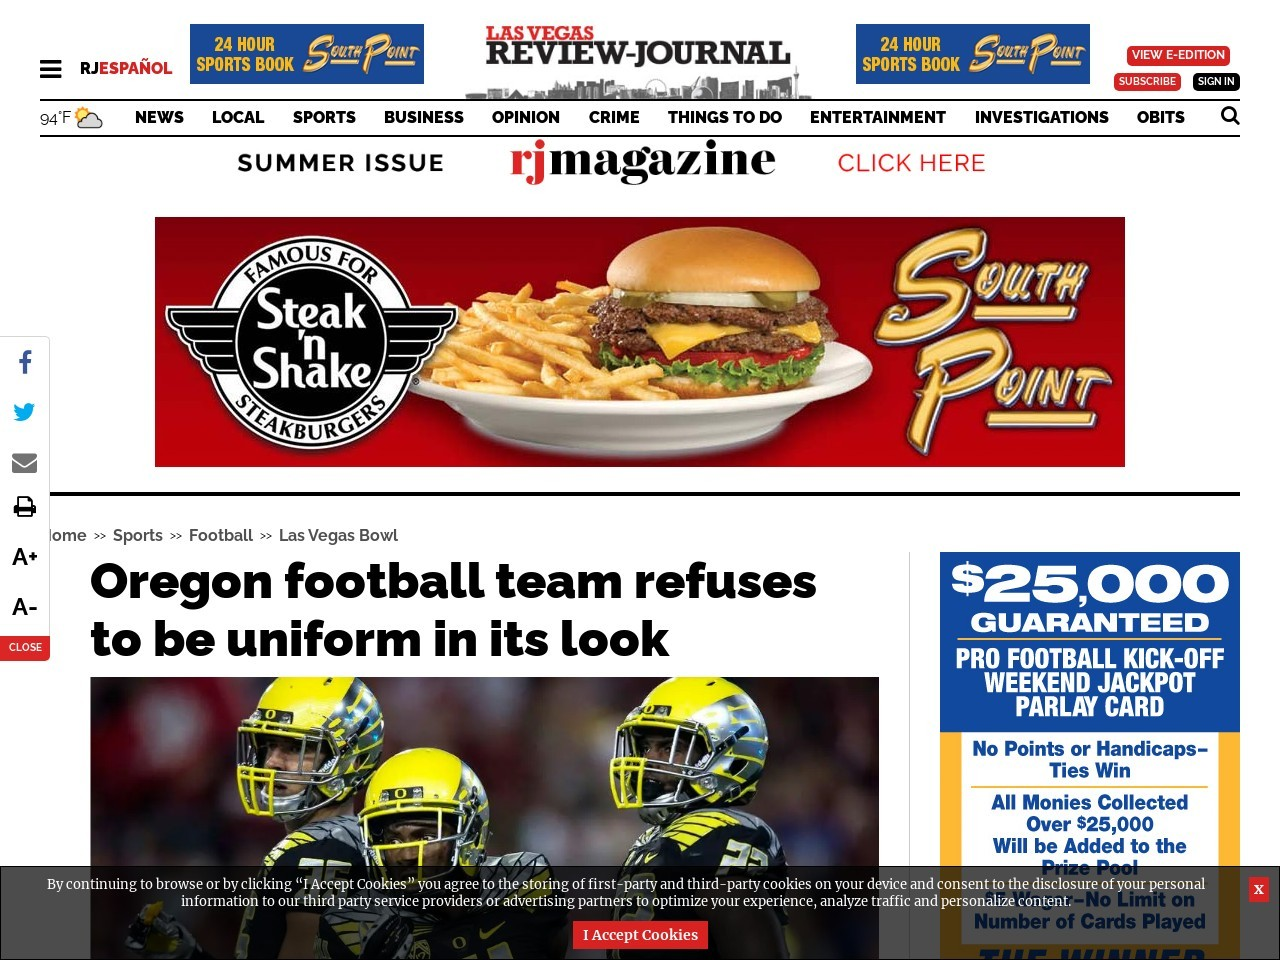 Oregon football team refuses to be uniform in its look